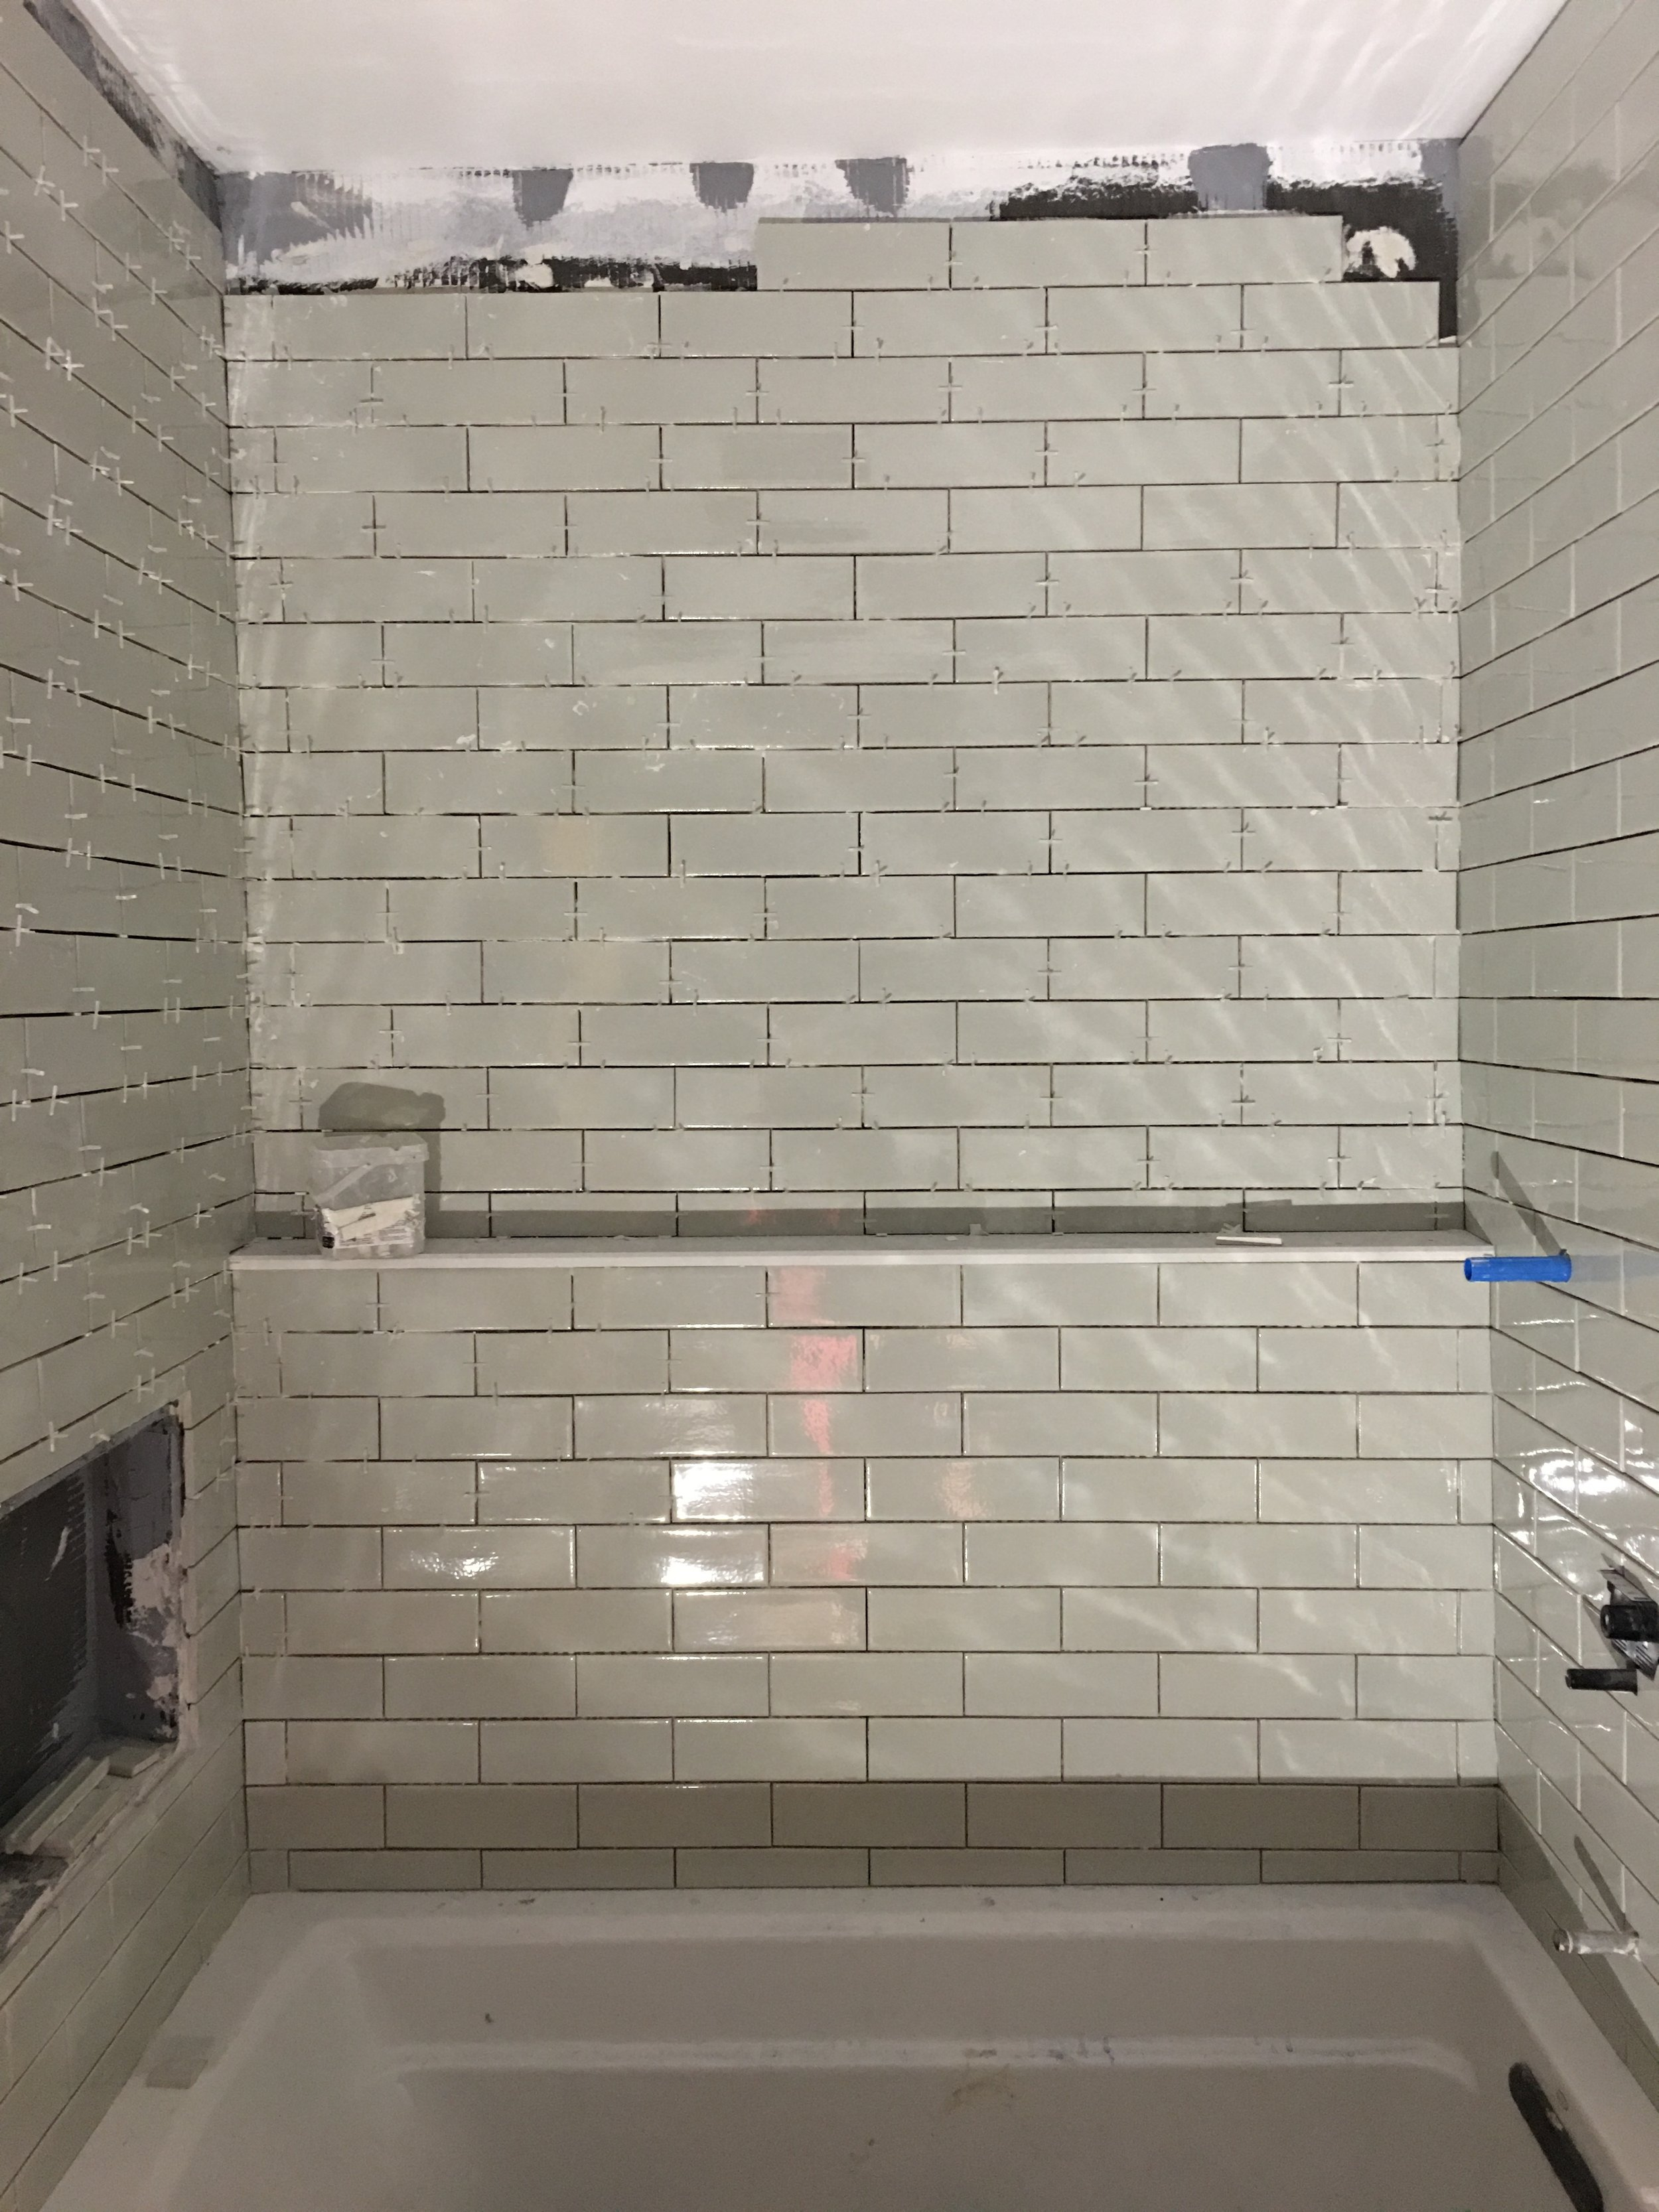 Beautiful tile, just a little off level.